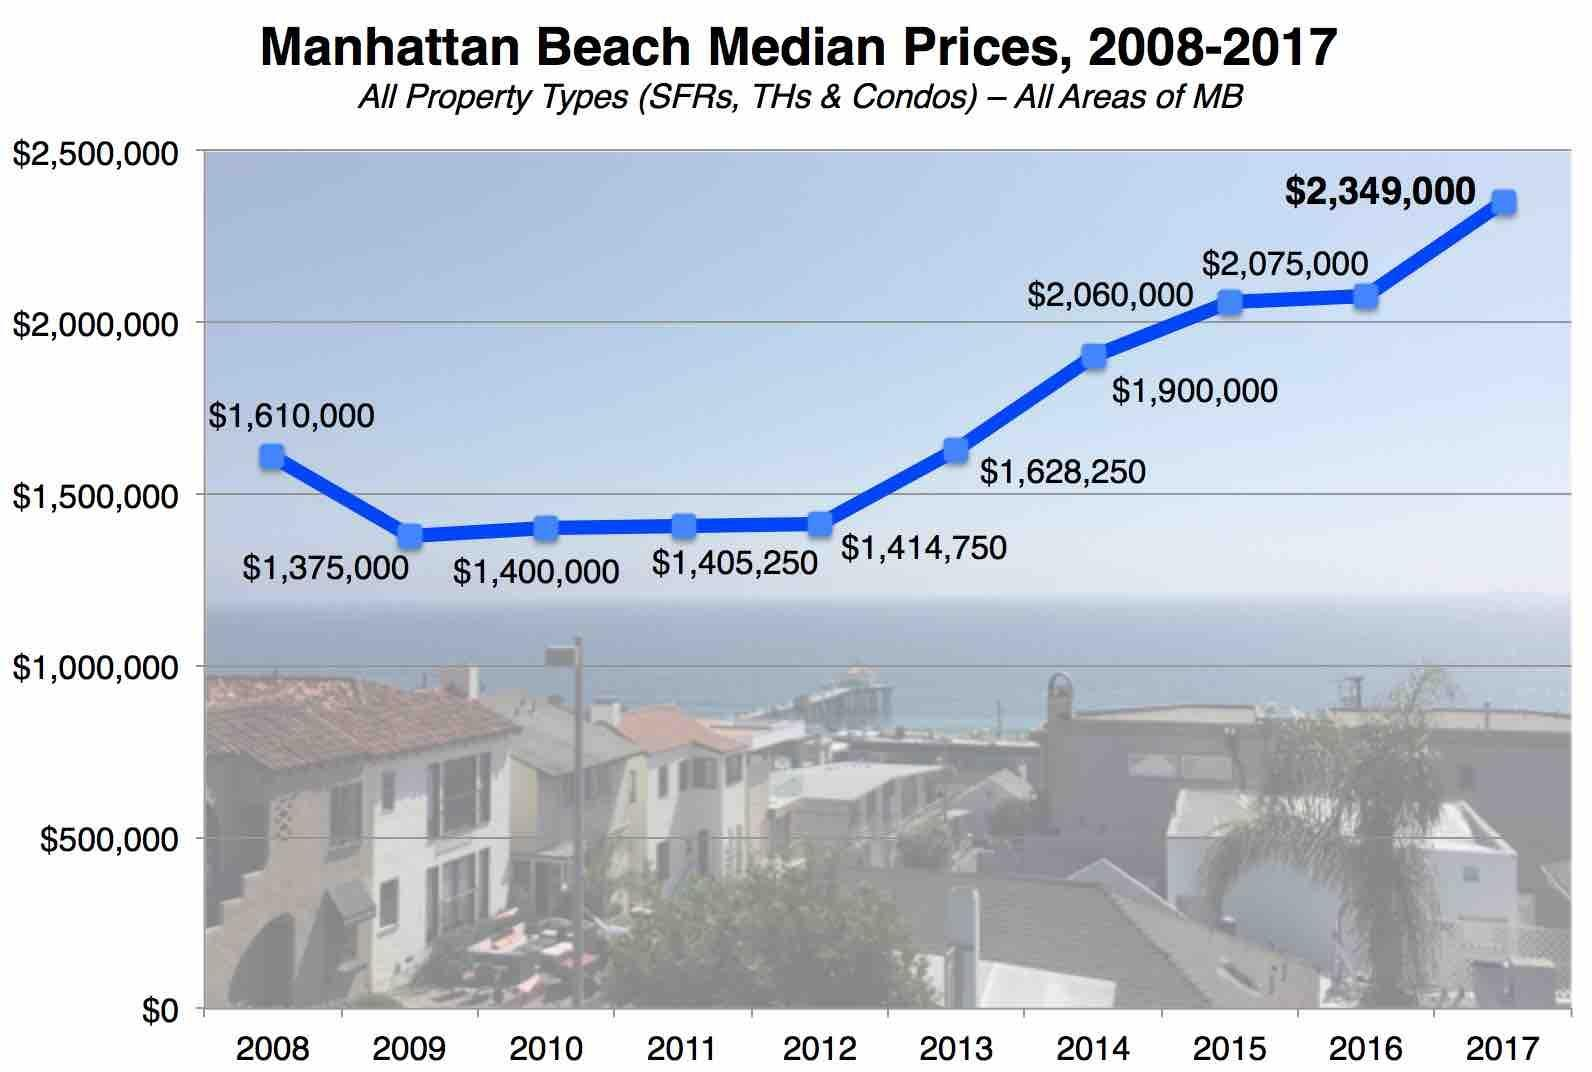 manhattan-beach-median-price-2017